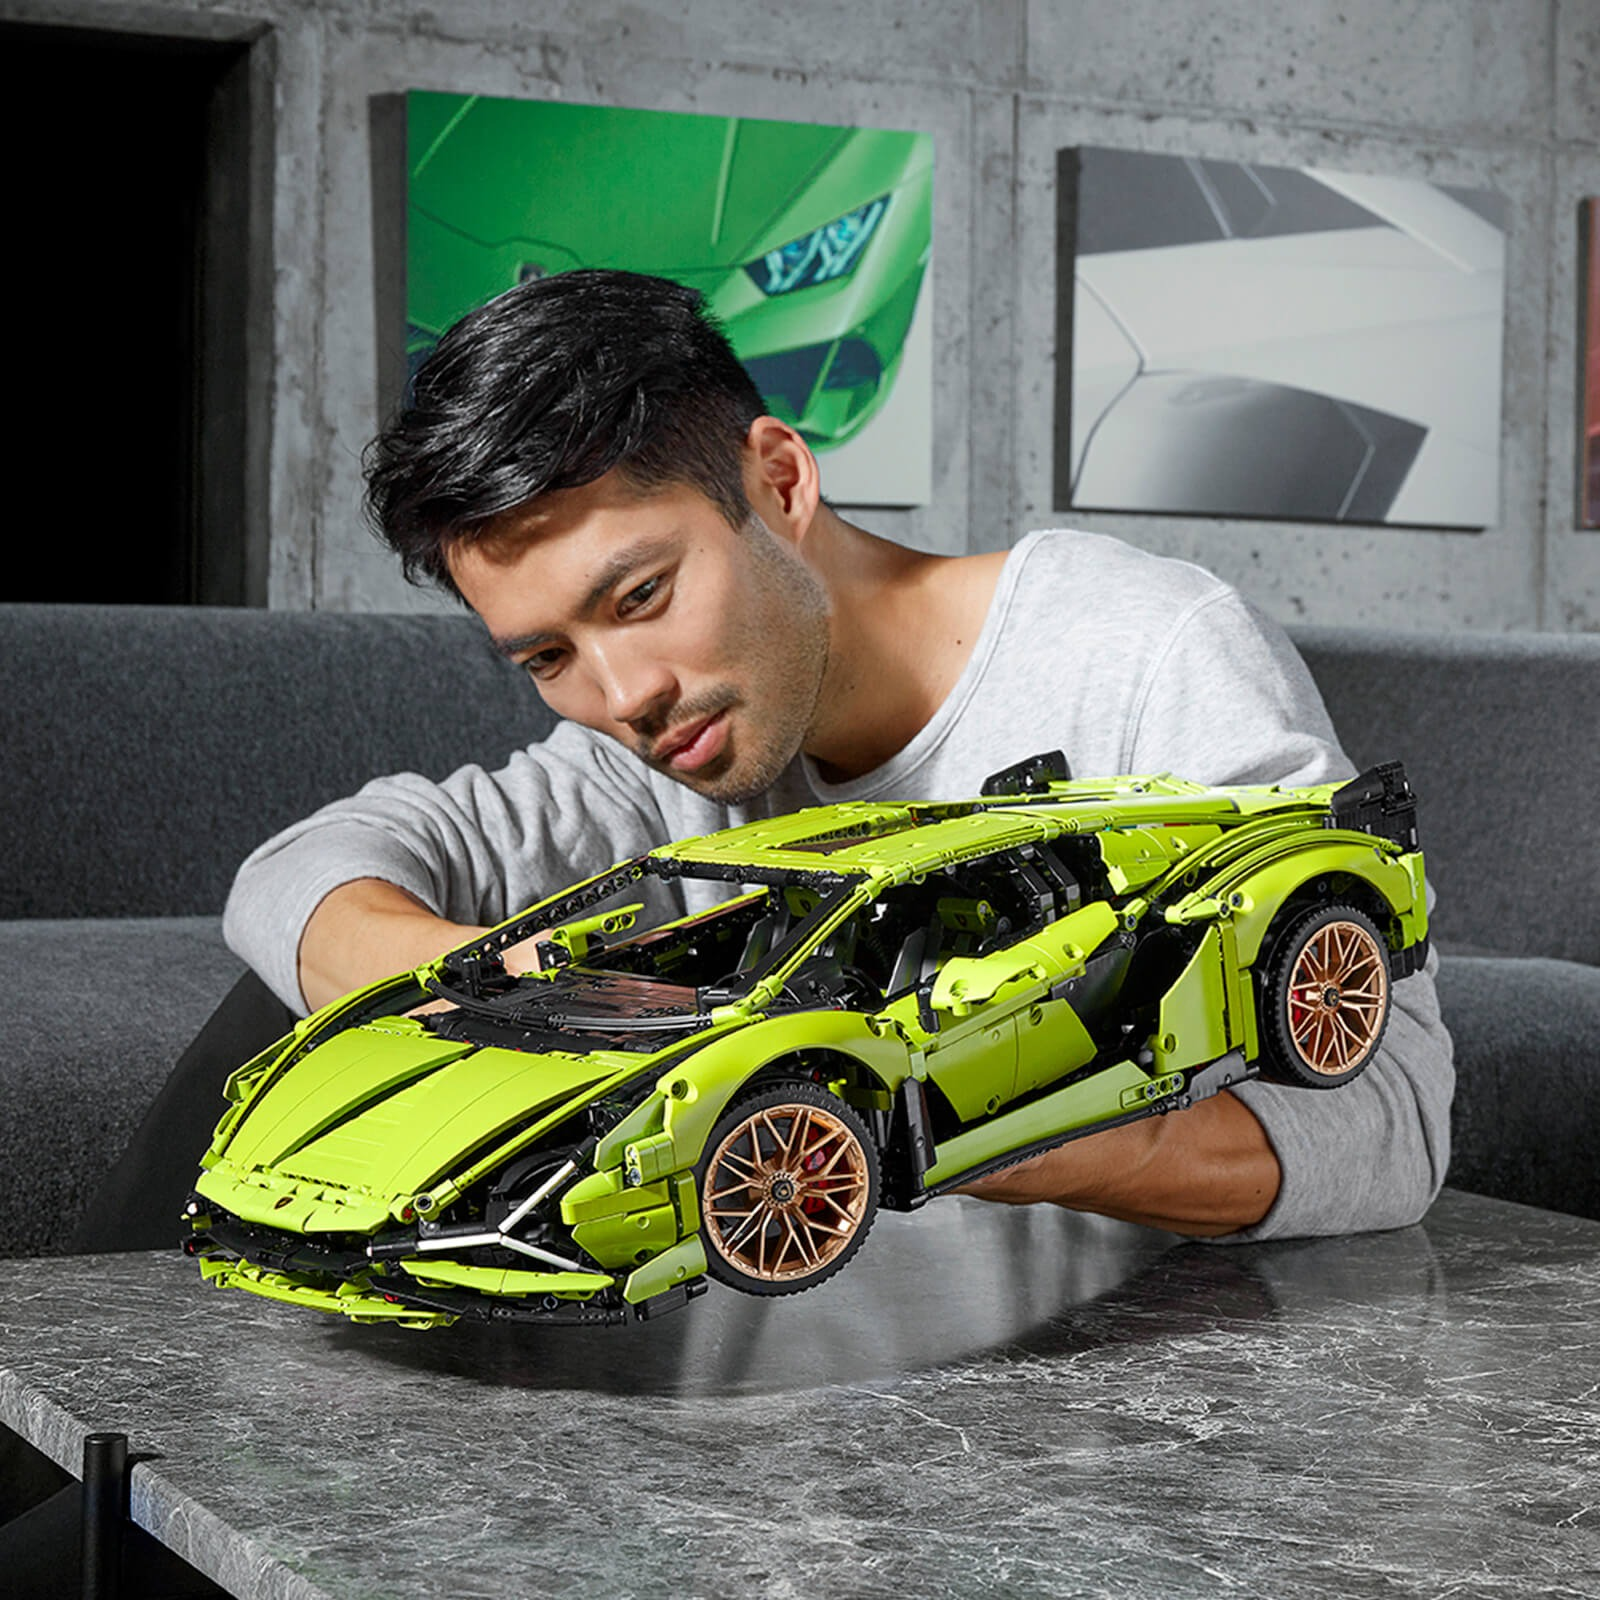 ihocon: 樂高積木 LEGO Technic: Lamborghini Sián FKP 37 Car Model (42115)